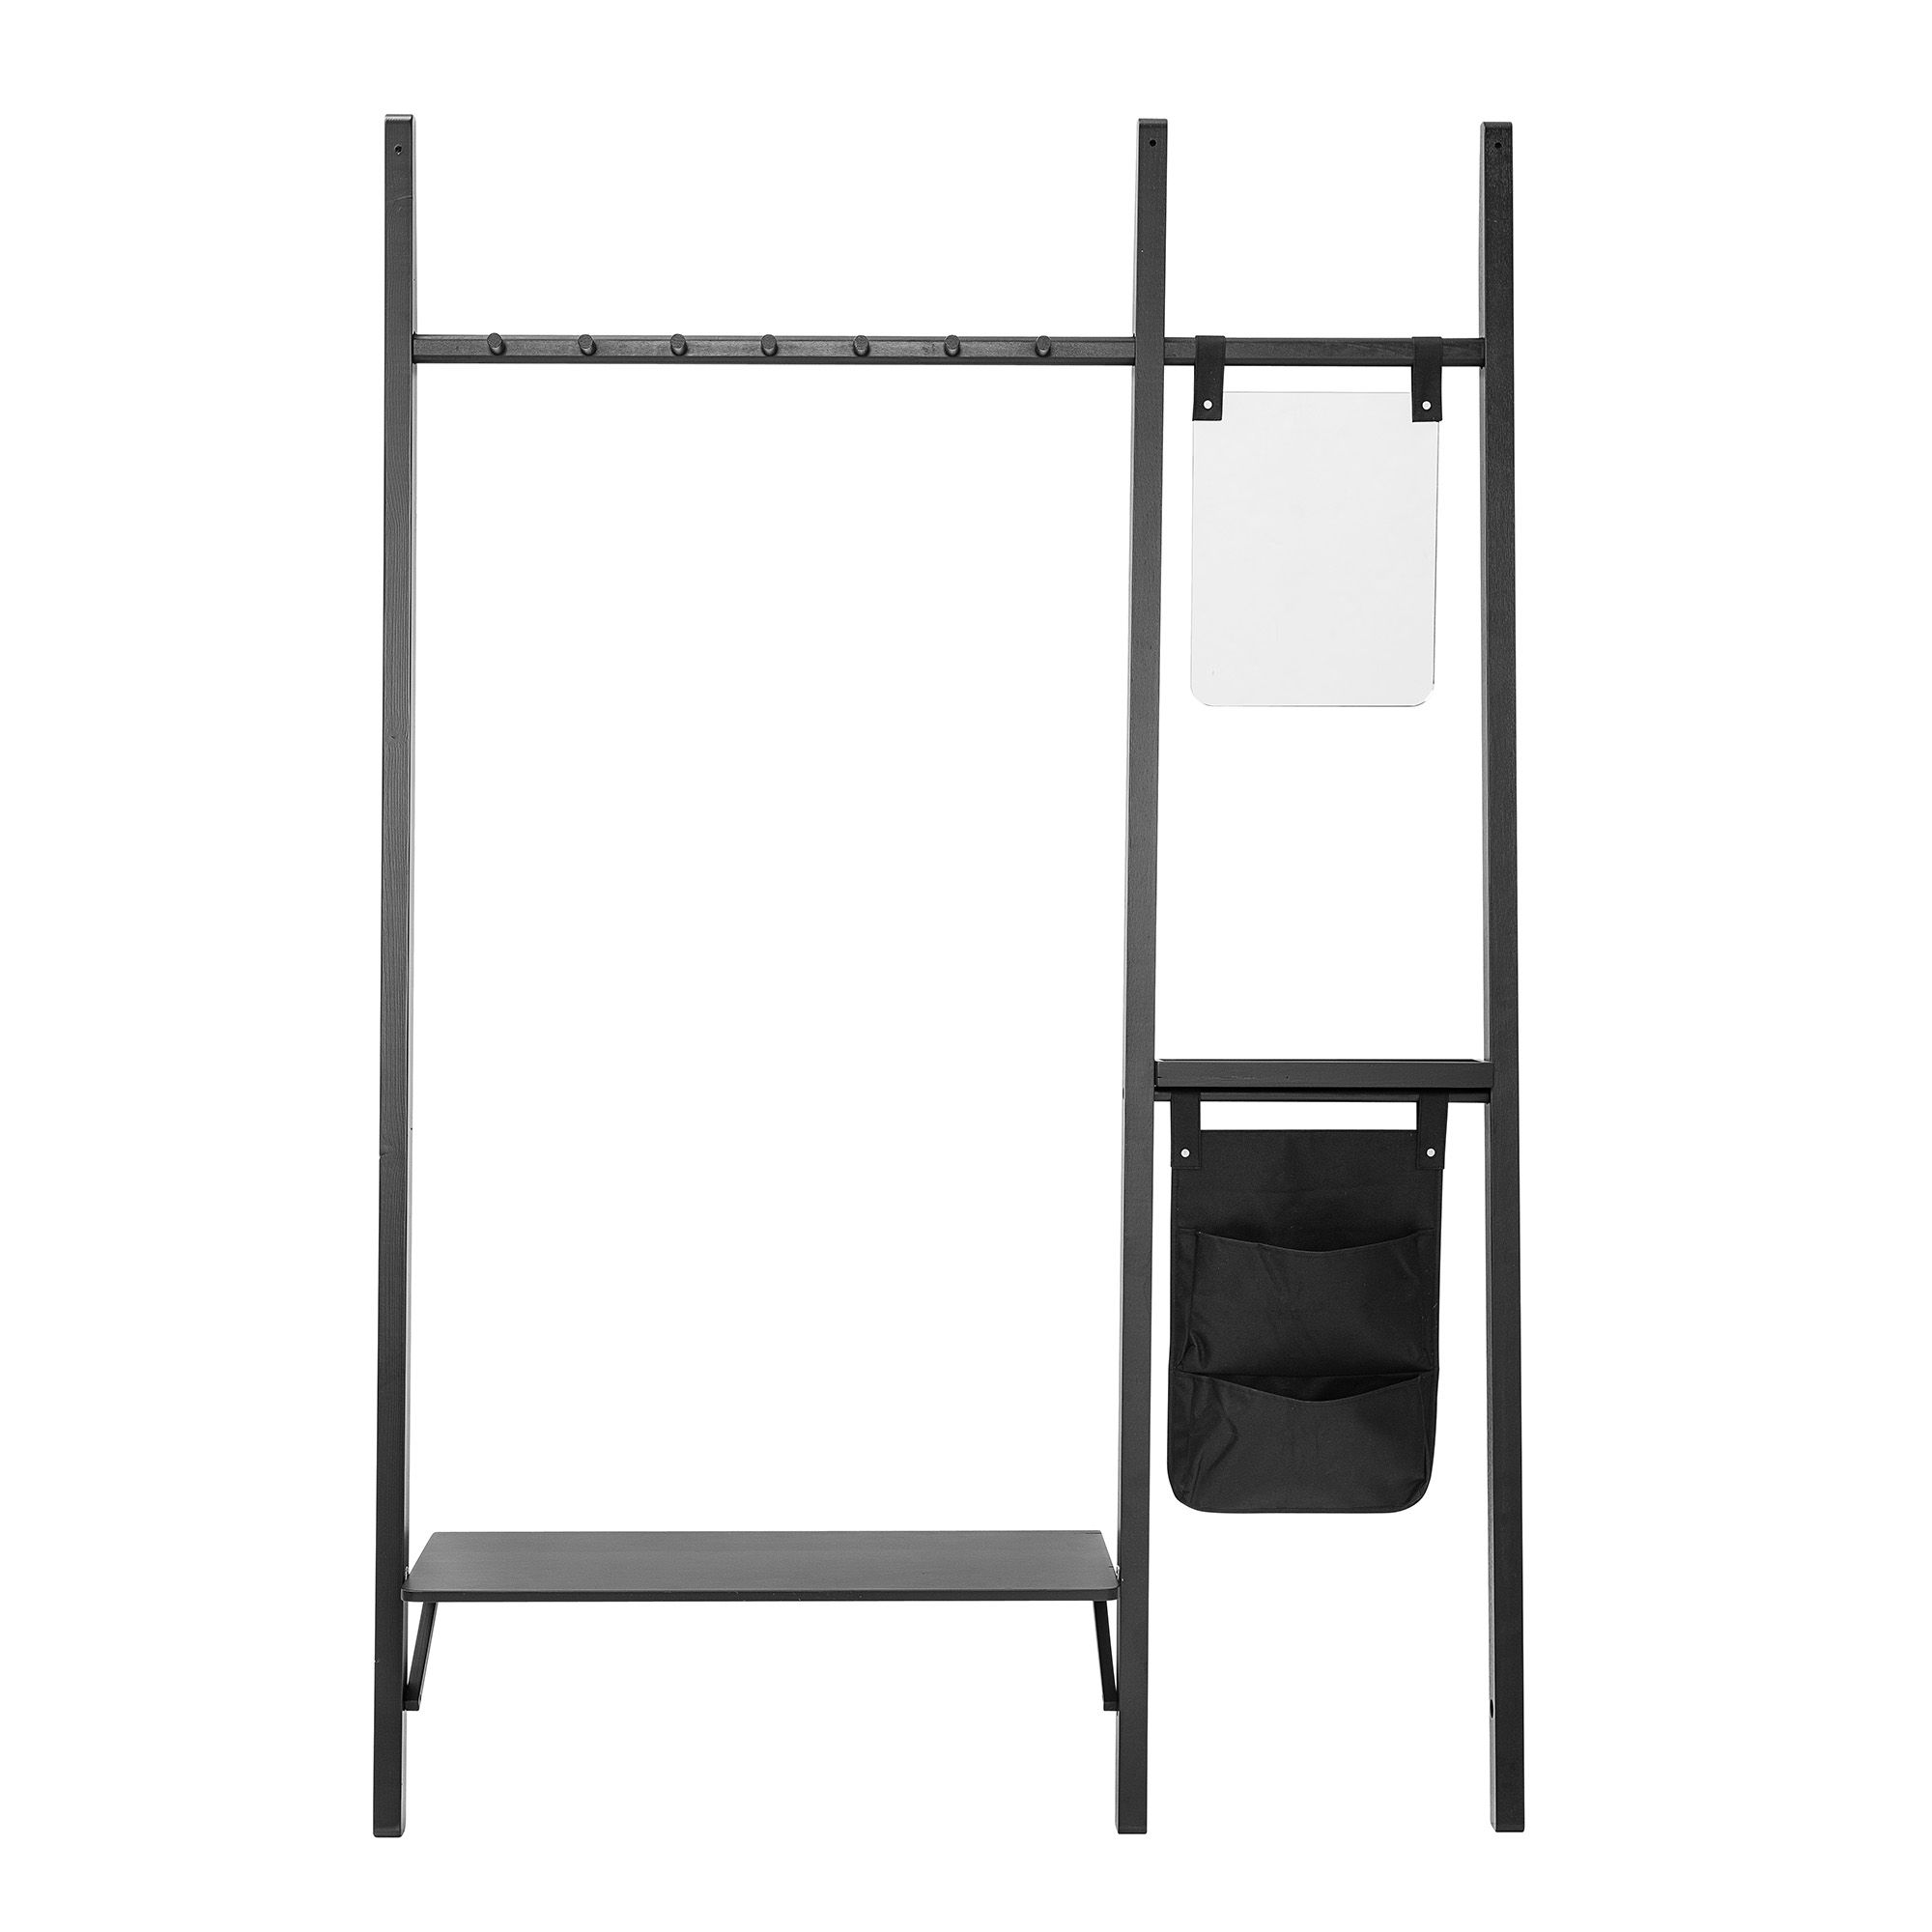 Mira Storage Rack U003c3 Wall Mounted. Design By Bloomingville U003c3